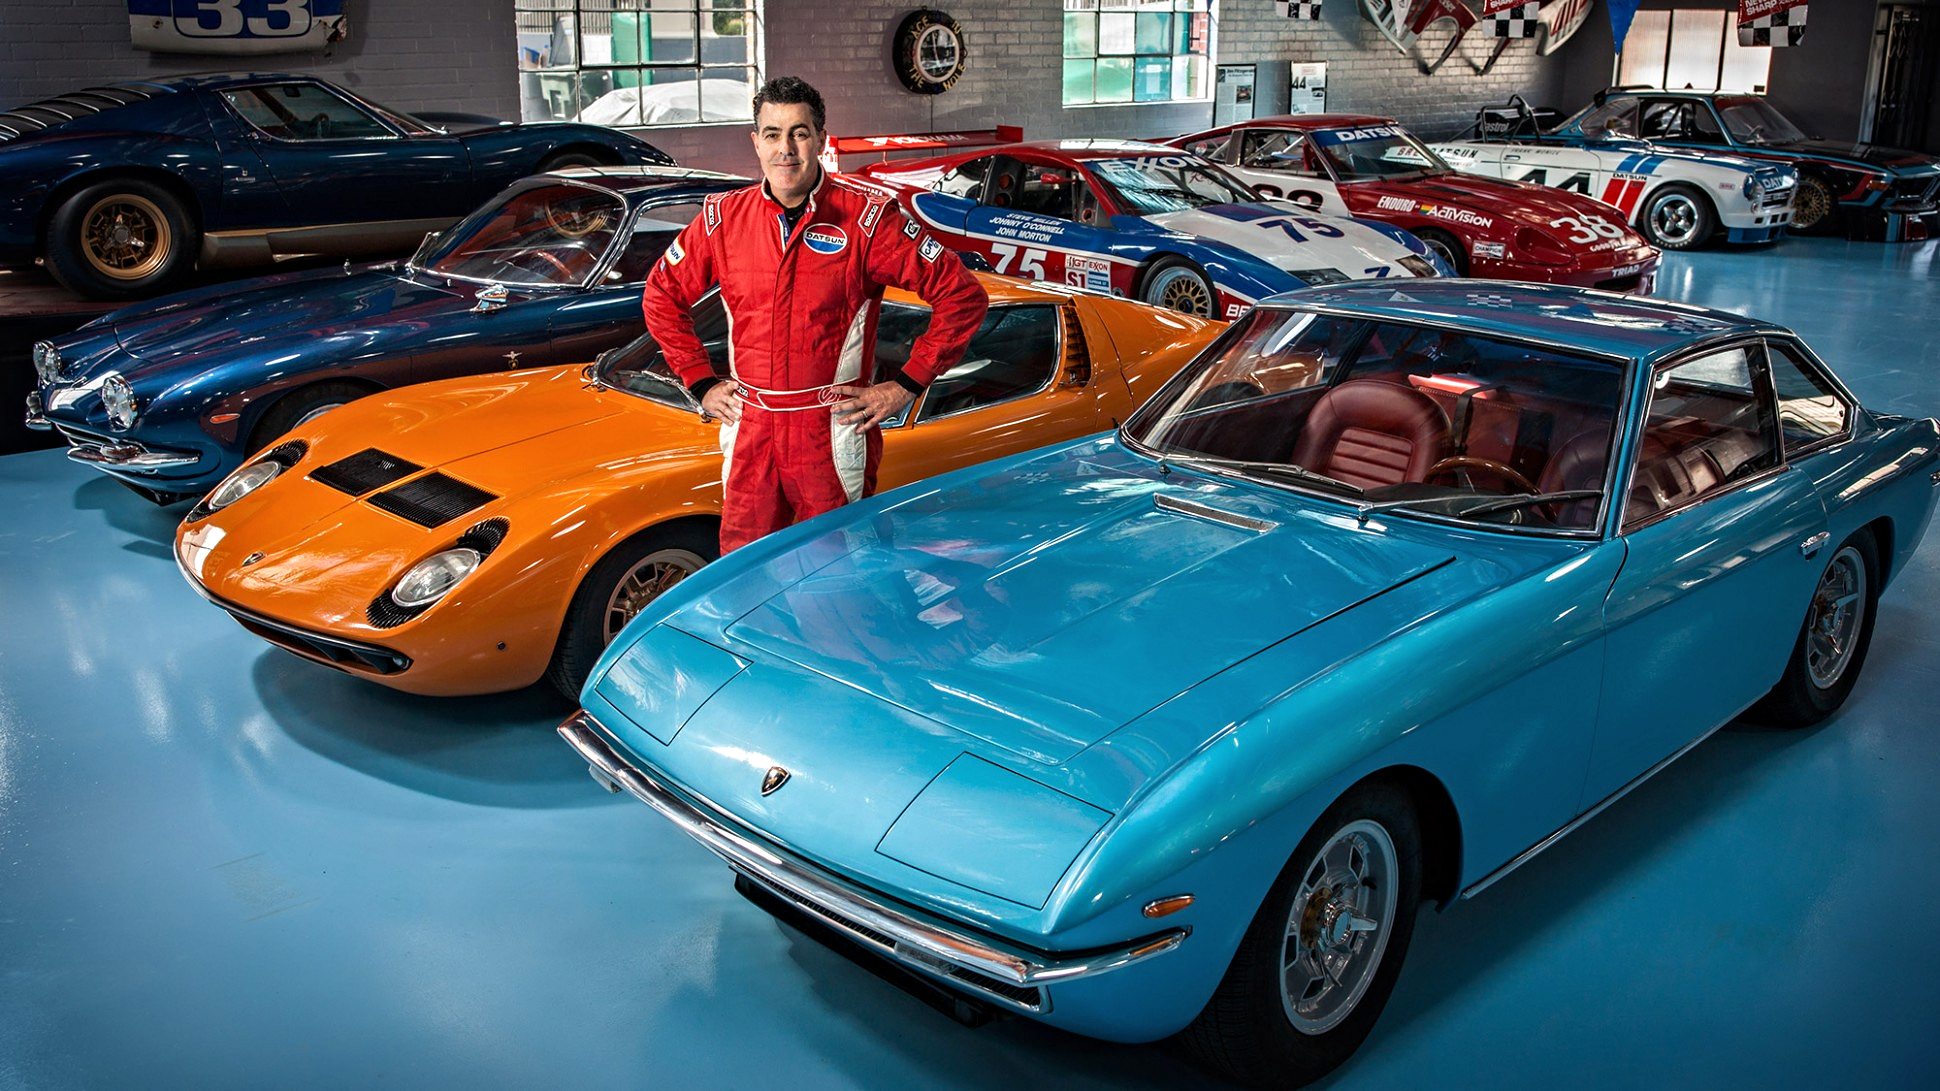 """Forbes   How Adam Carolla Became the World's Greatest Paul Newman Racecar Collector  Before breaking into Hollywood, comedian Adam Carolla spent 12 years in construction. Now he spends 12 hours a week on his podcast venting about everything from government handouts to specious """"service"""" dogs on airplanes to proper pizza toppings. He approaches everything with an I-can-do-it-better-myself attitude. It drives his most passionate pursuit: restoring Paul Newman's race cars.He has spent nearly $1 million acquiring and will spend another $1 million rebuilding seven of Newman's race cars–the largest known collection in the world."""